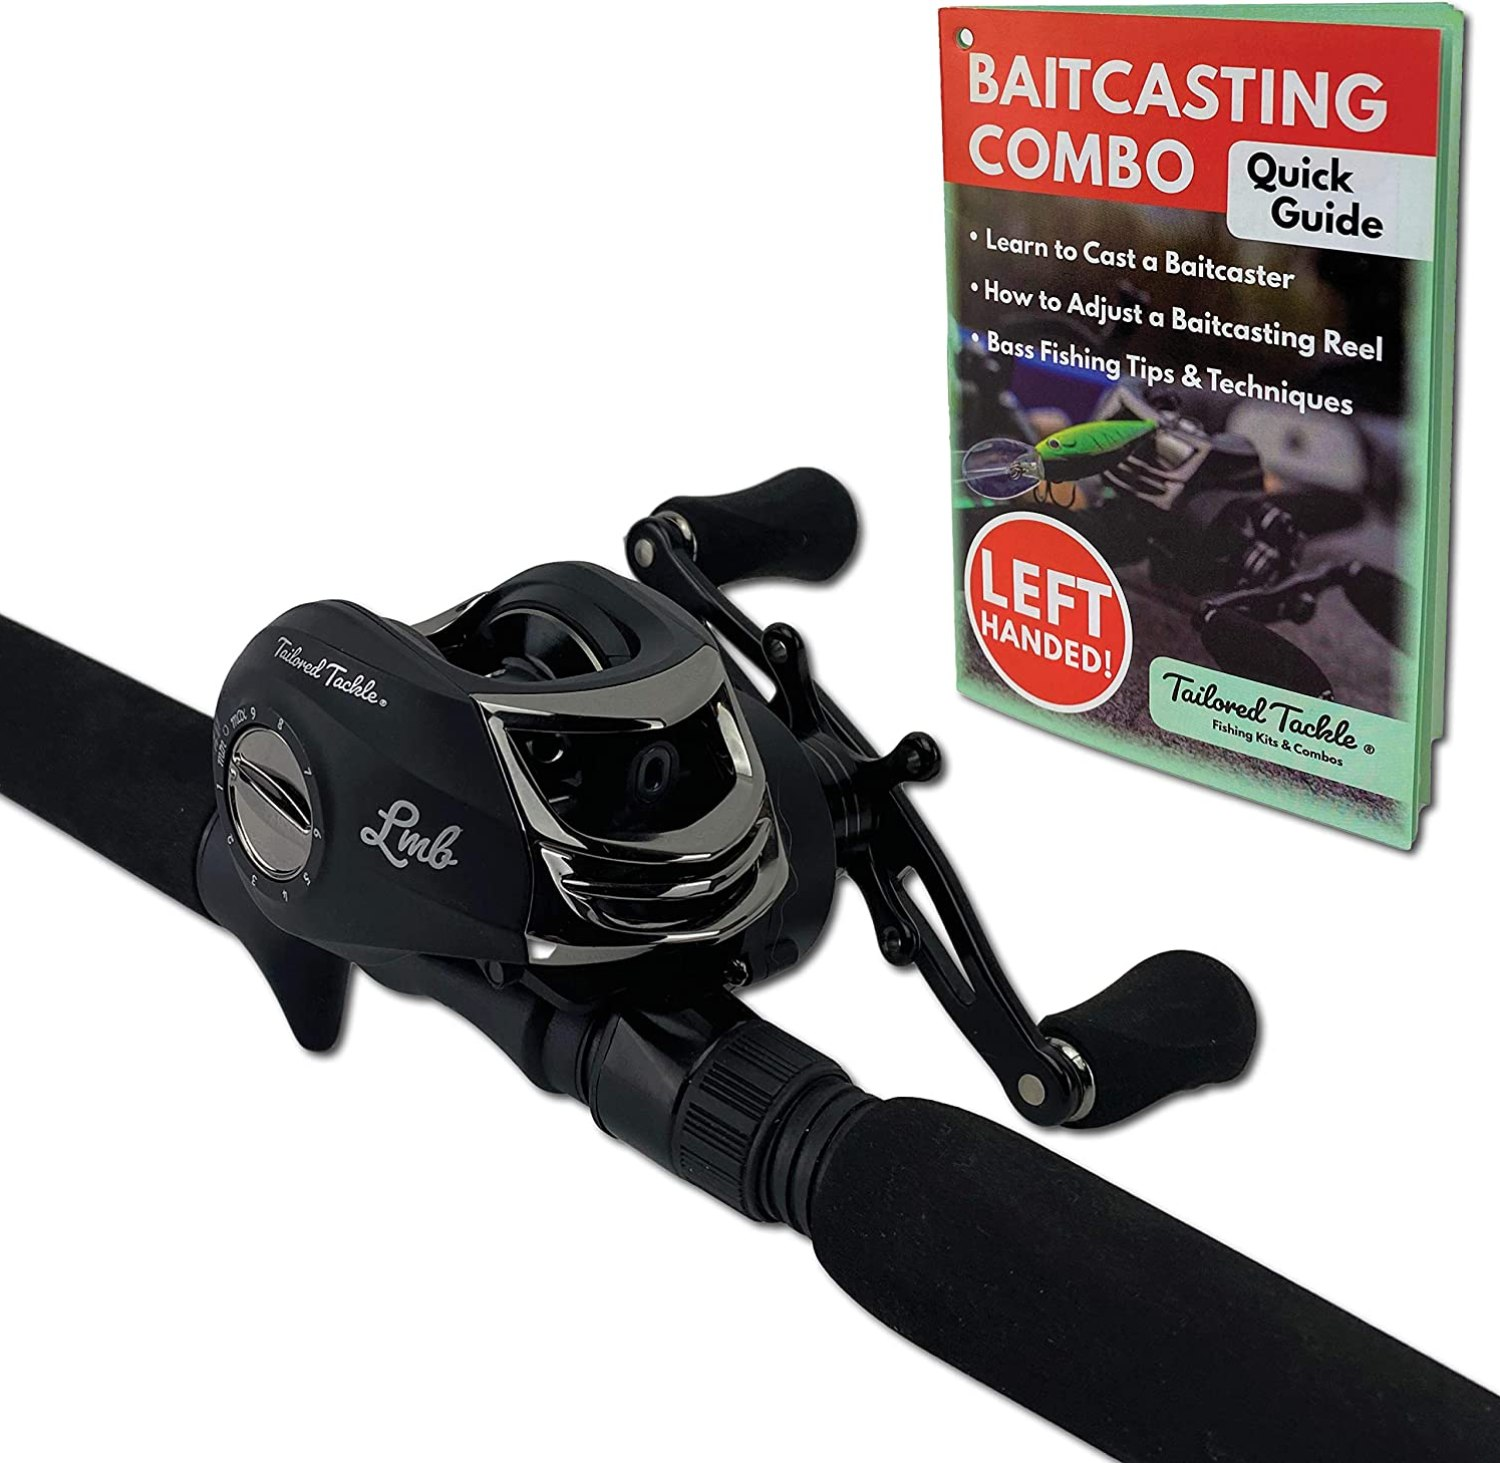 Tailored Tackle (Left Handed Bass Fishing Rod Reel Baitcasting Combo